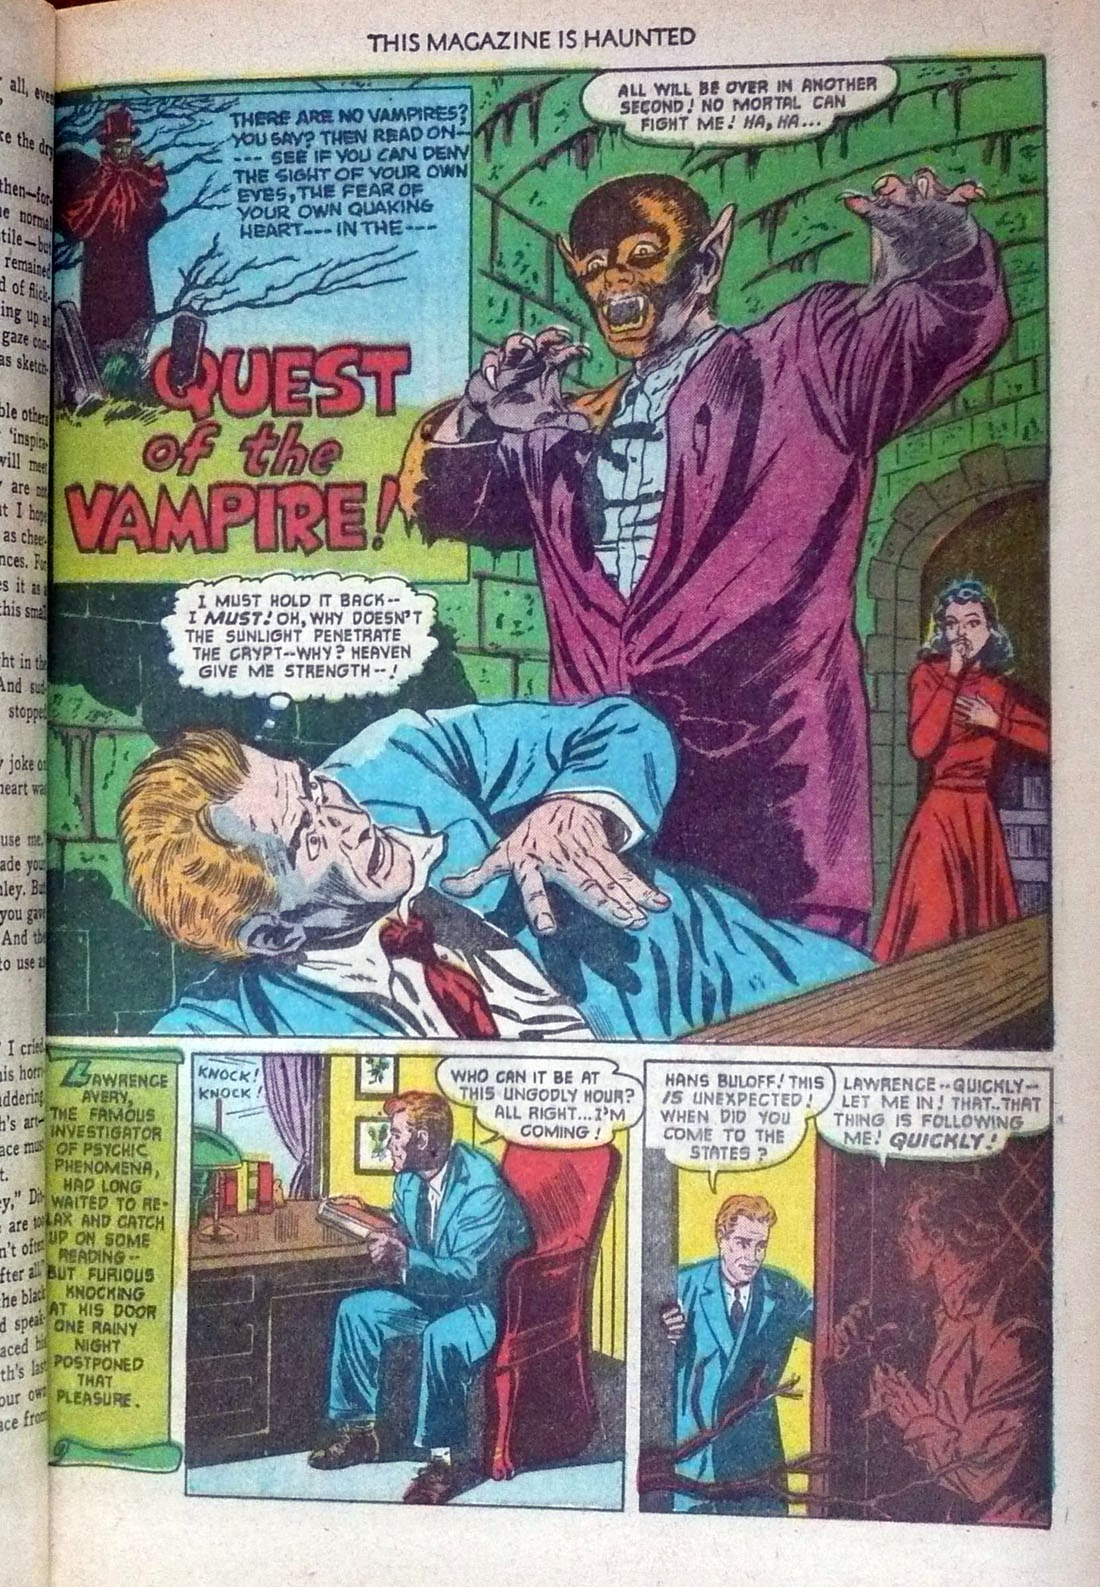 Read online This Magazine Is Haunted comic -  Issue #3 - 25